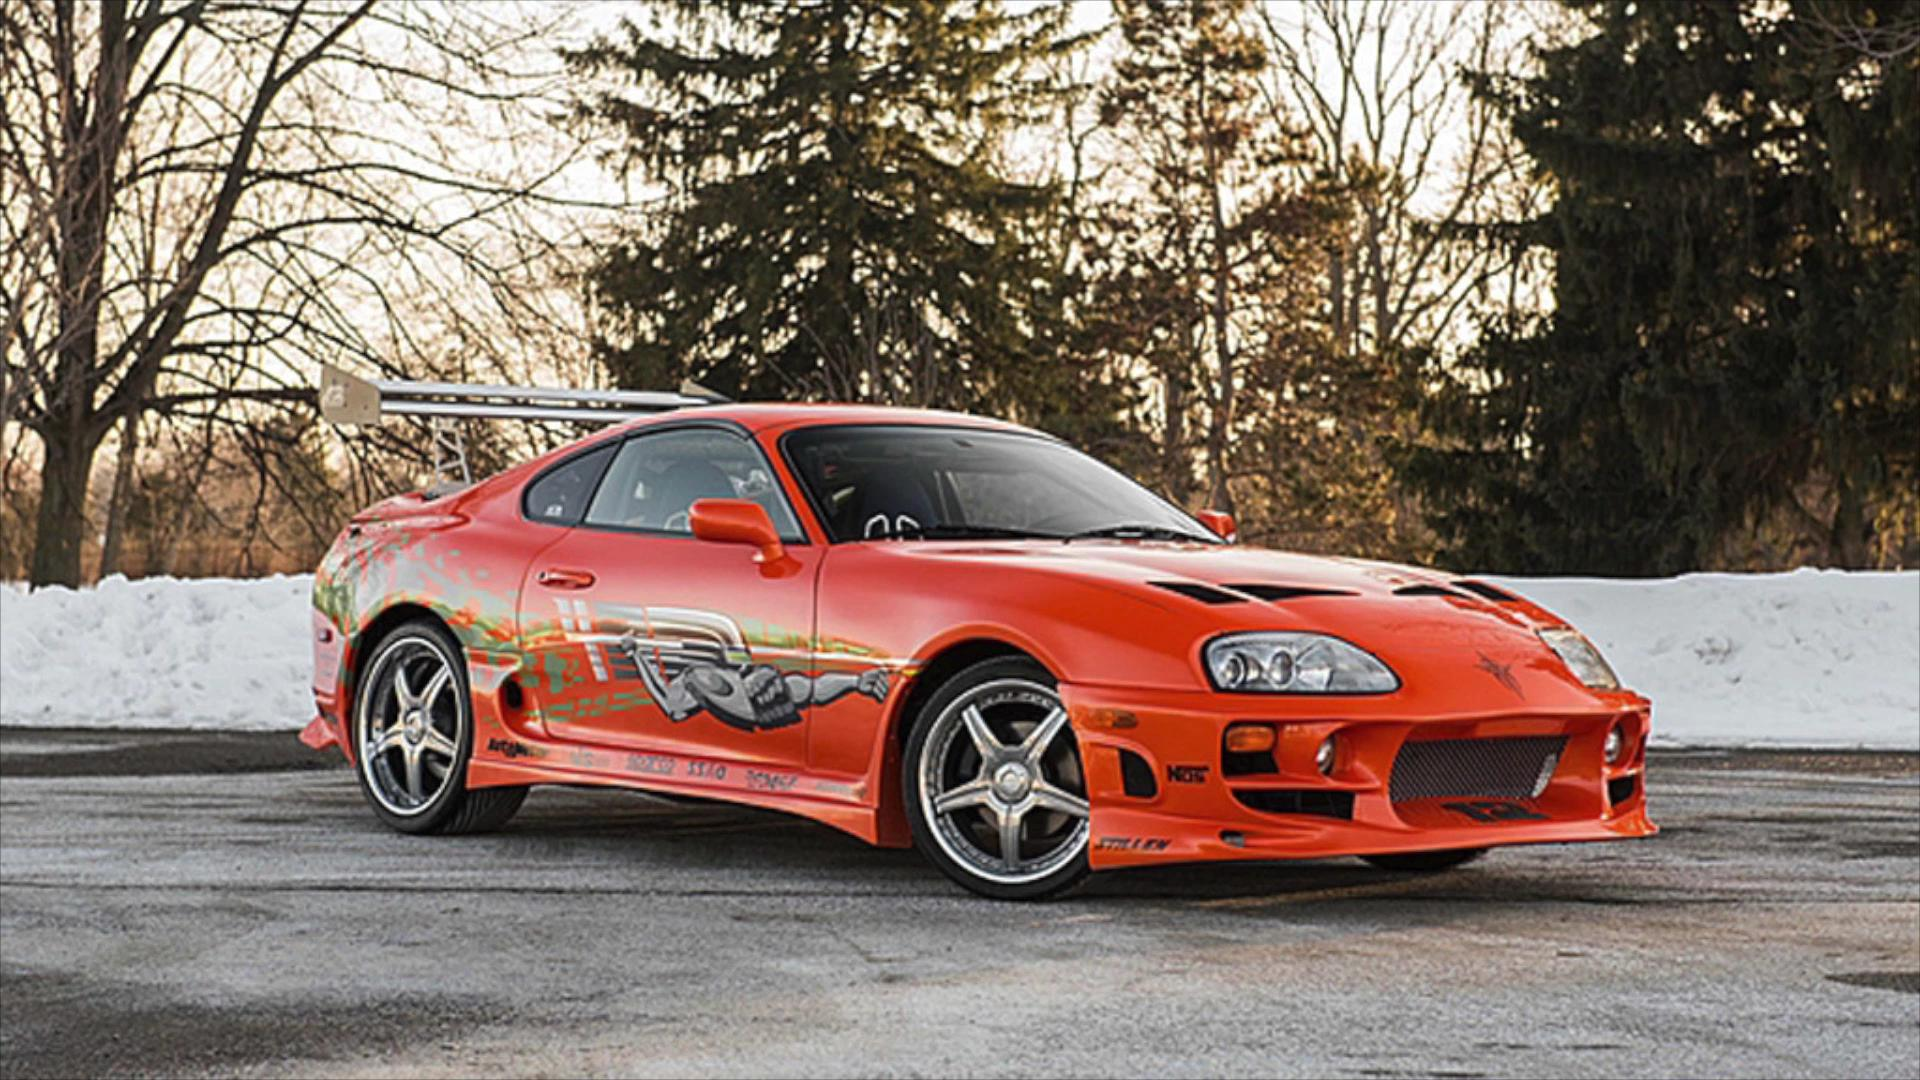 Paul Walkerdriven Fast And The Furious Car Up For Sale - Fast sports cars for sale